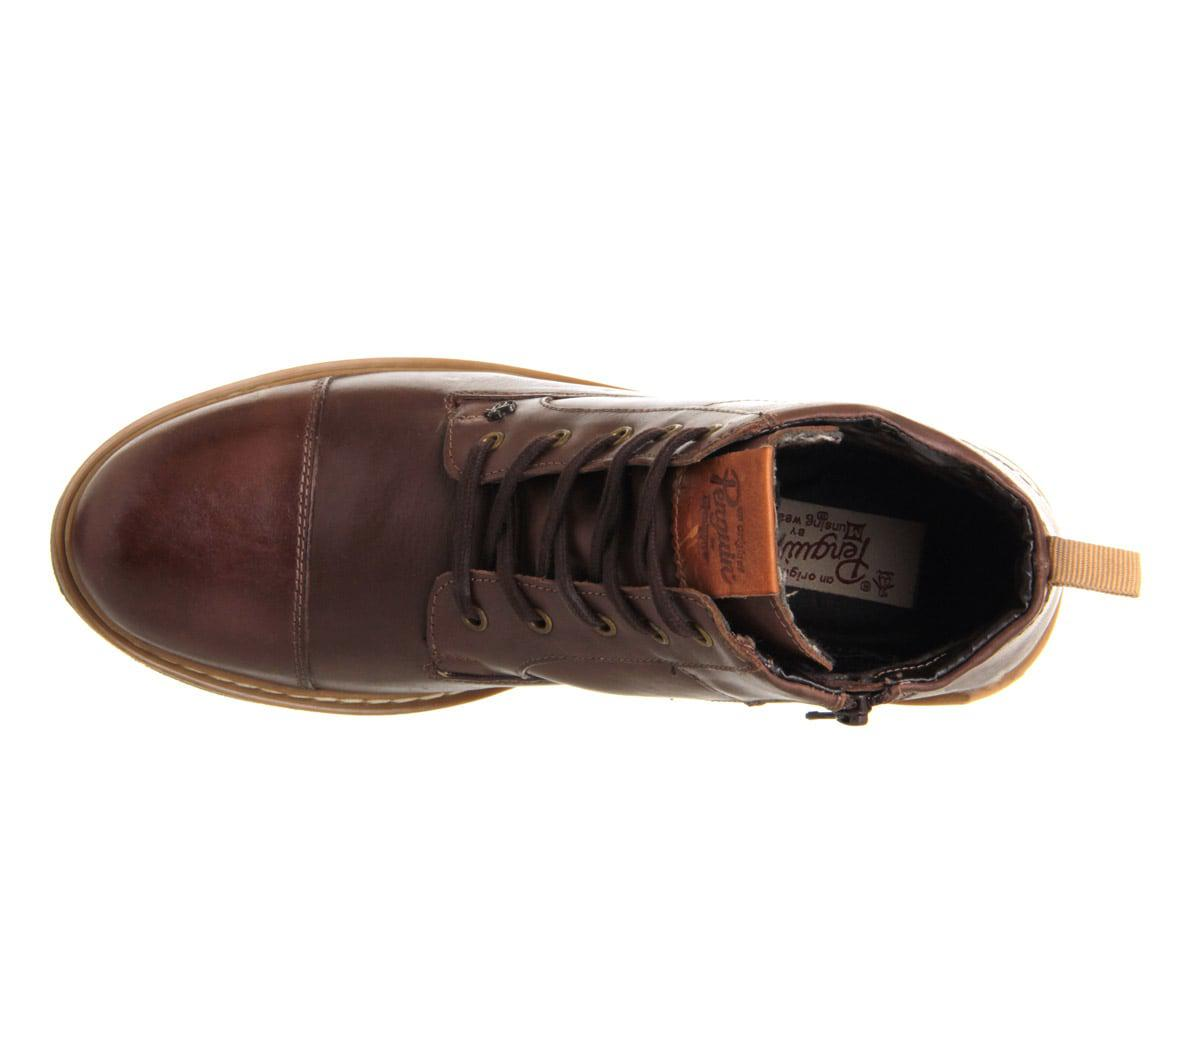 New Mens Penguin Brown Dalston Leather Boots Lace Up